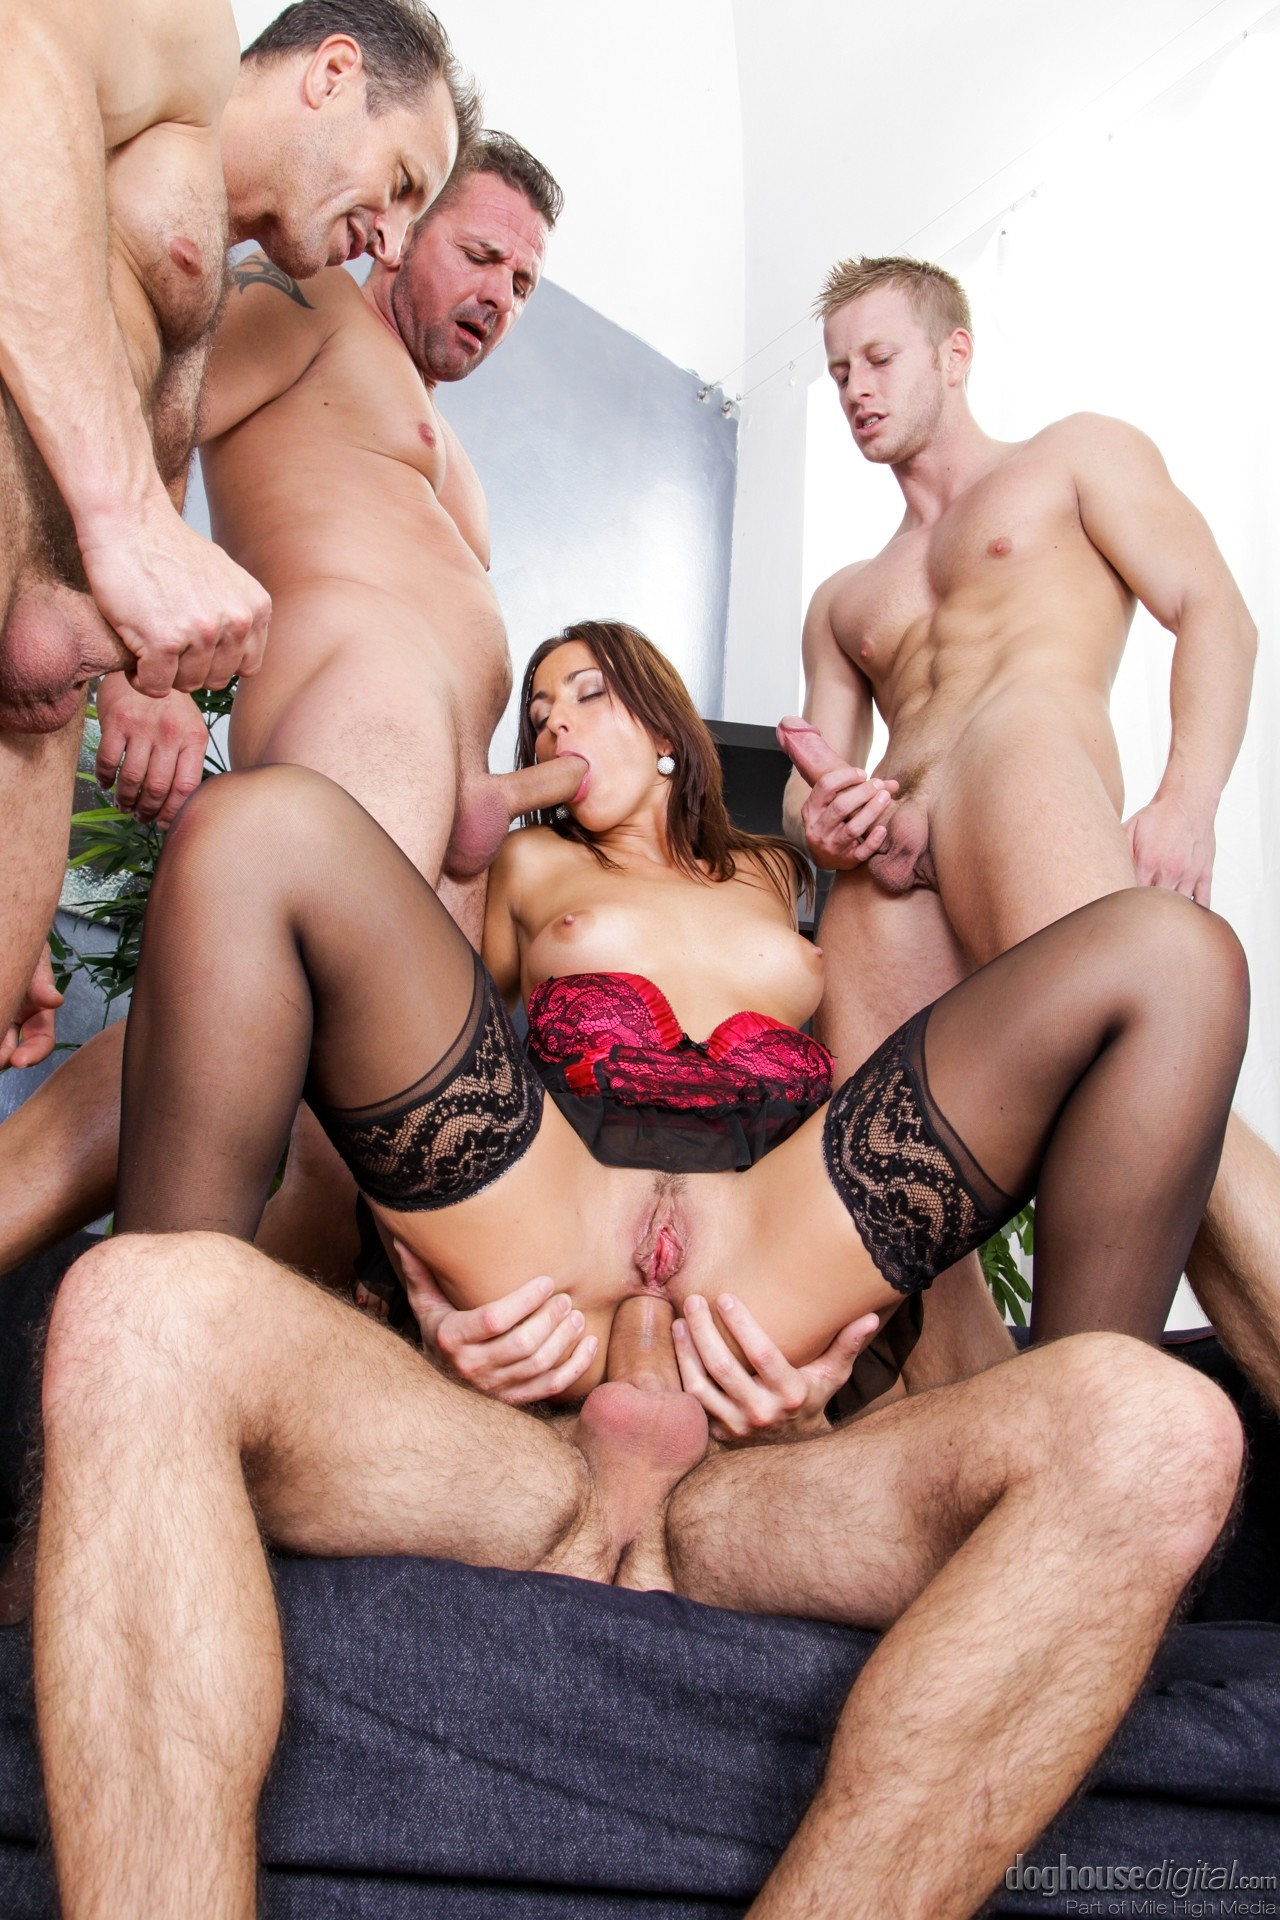 Free milf mmmf, cute wife stories of gangbang